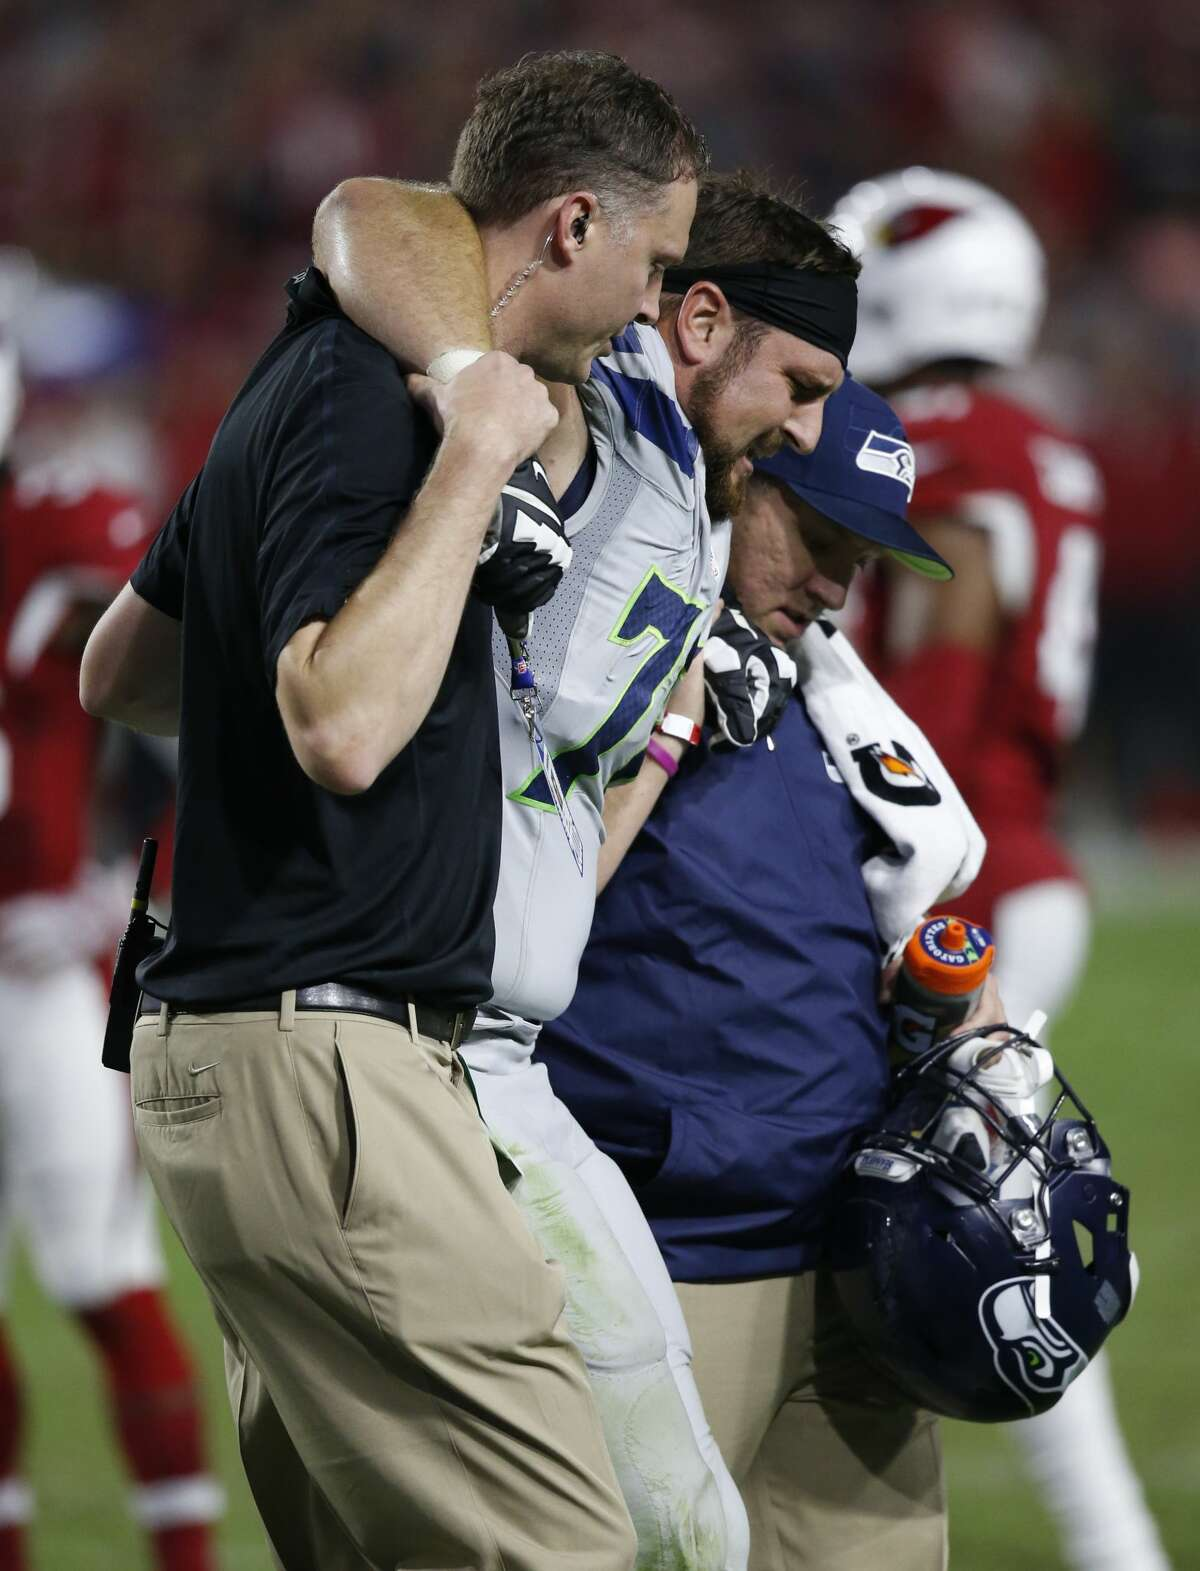 Seattle Seahawks tackle Bradley Sowell is helped off the field after an injury against the Arizona Cardinals during the second half of a football game, Sunday, Oct. 23, 2016, in Glendale, Ariz. (AP Photo/Ross D. Franklin)